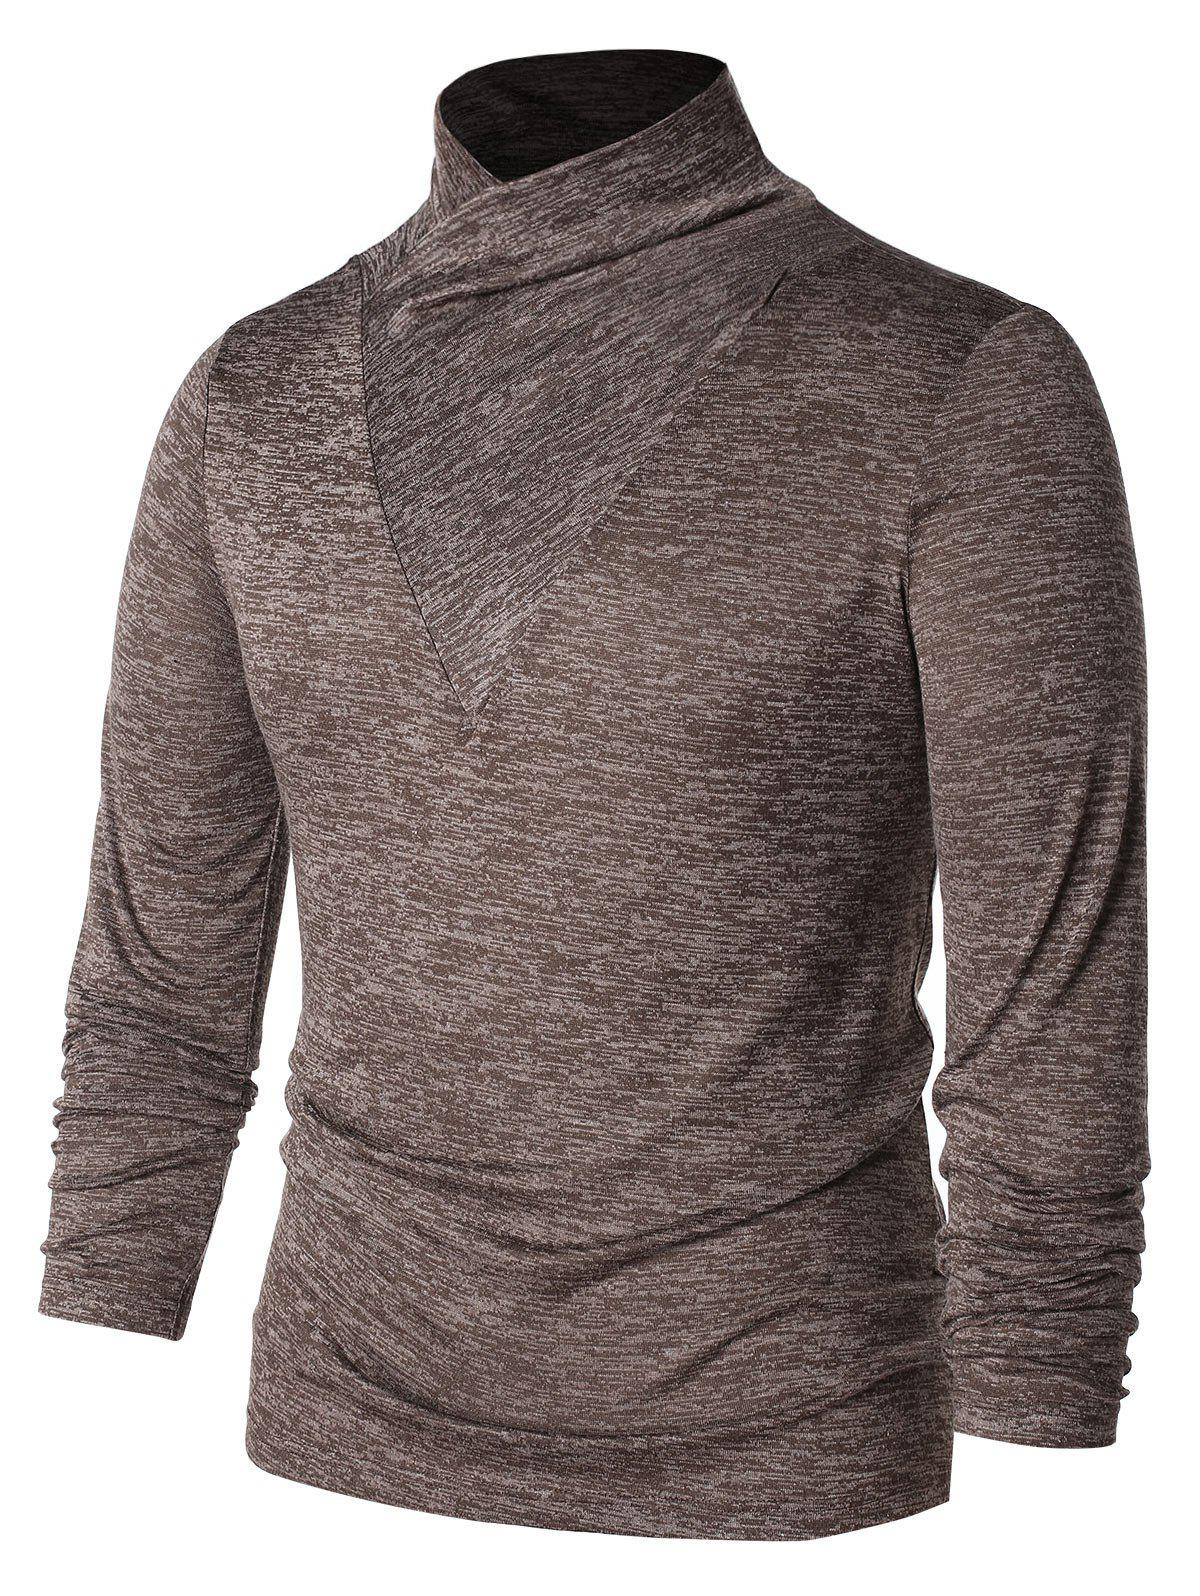 Shawl Collar Long Sleeve T-shirt - BROWN XL